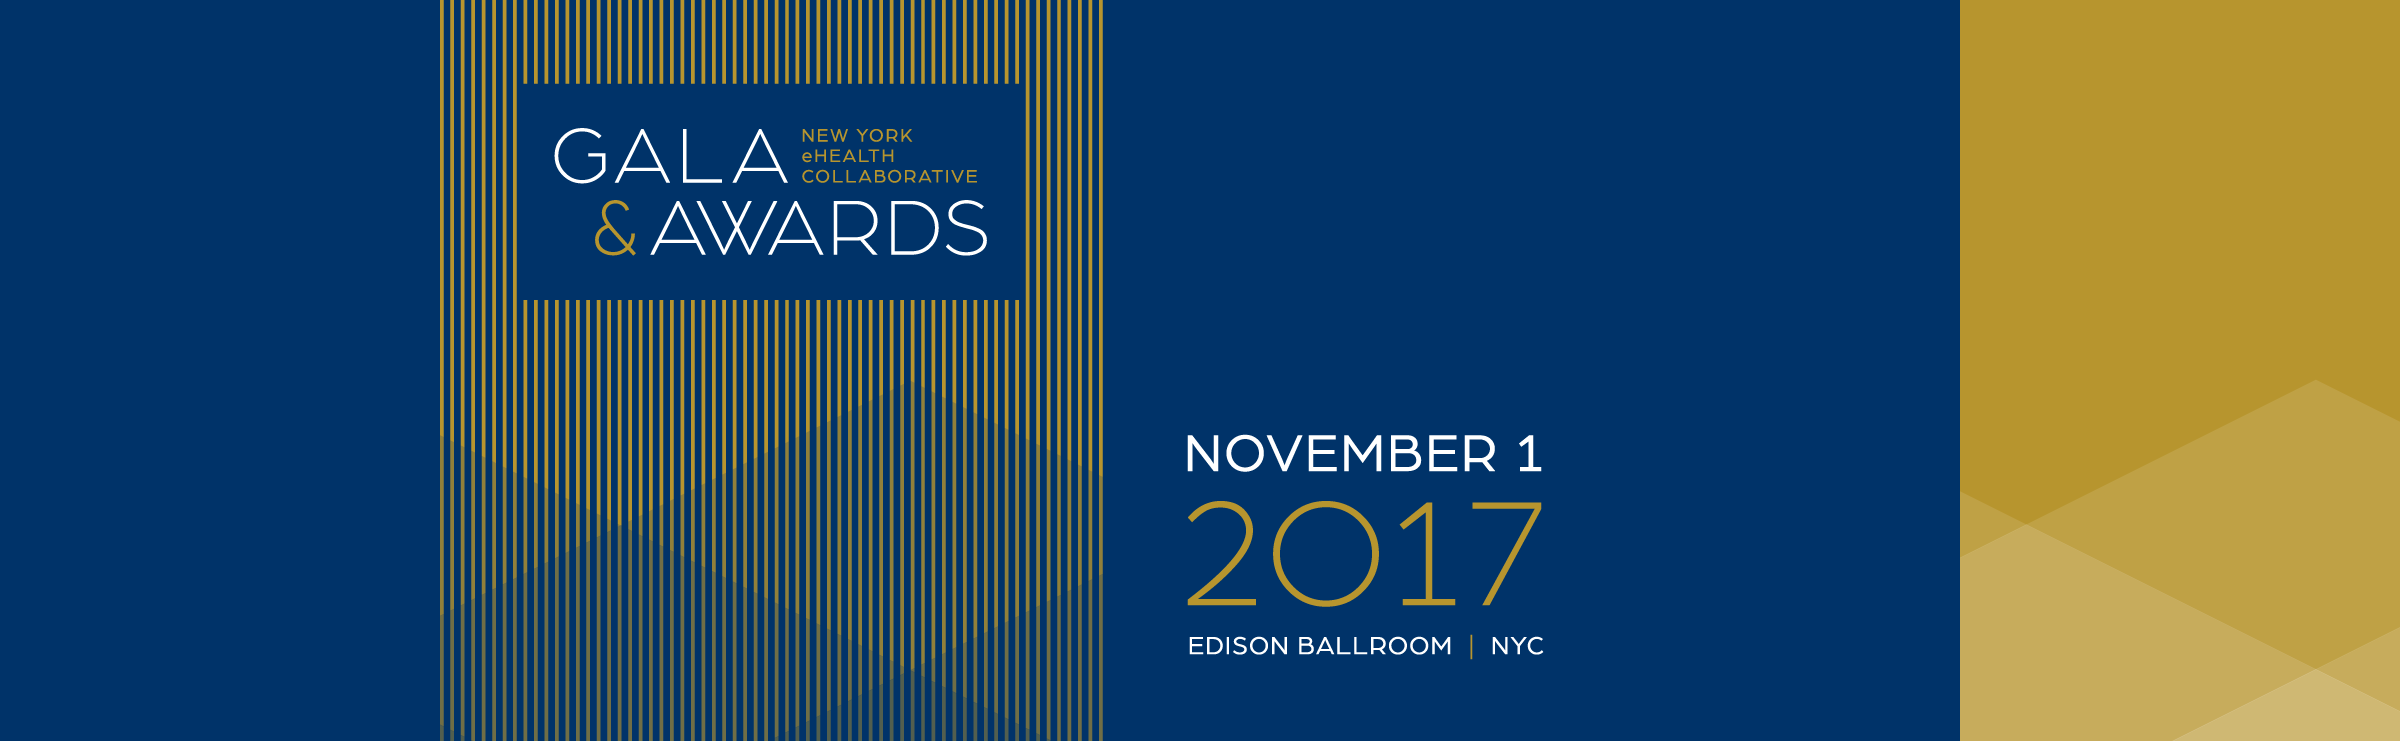 gala_and_awards_header_nyec_2400x741